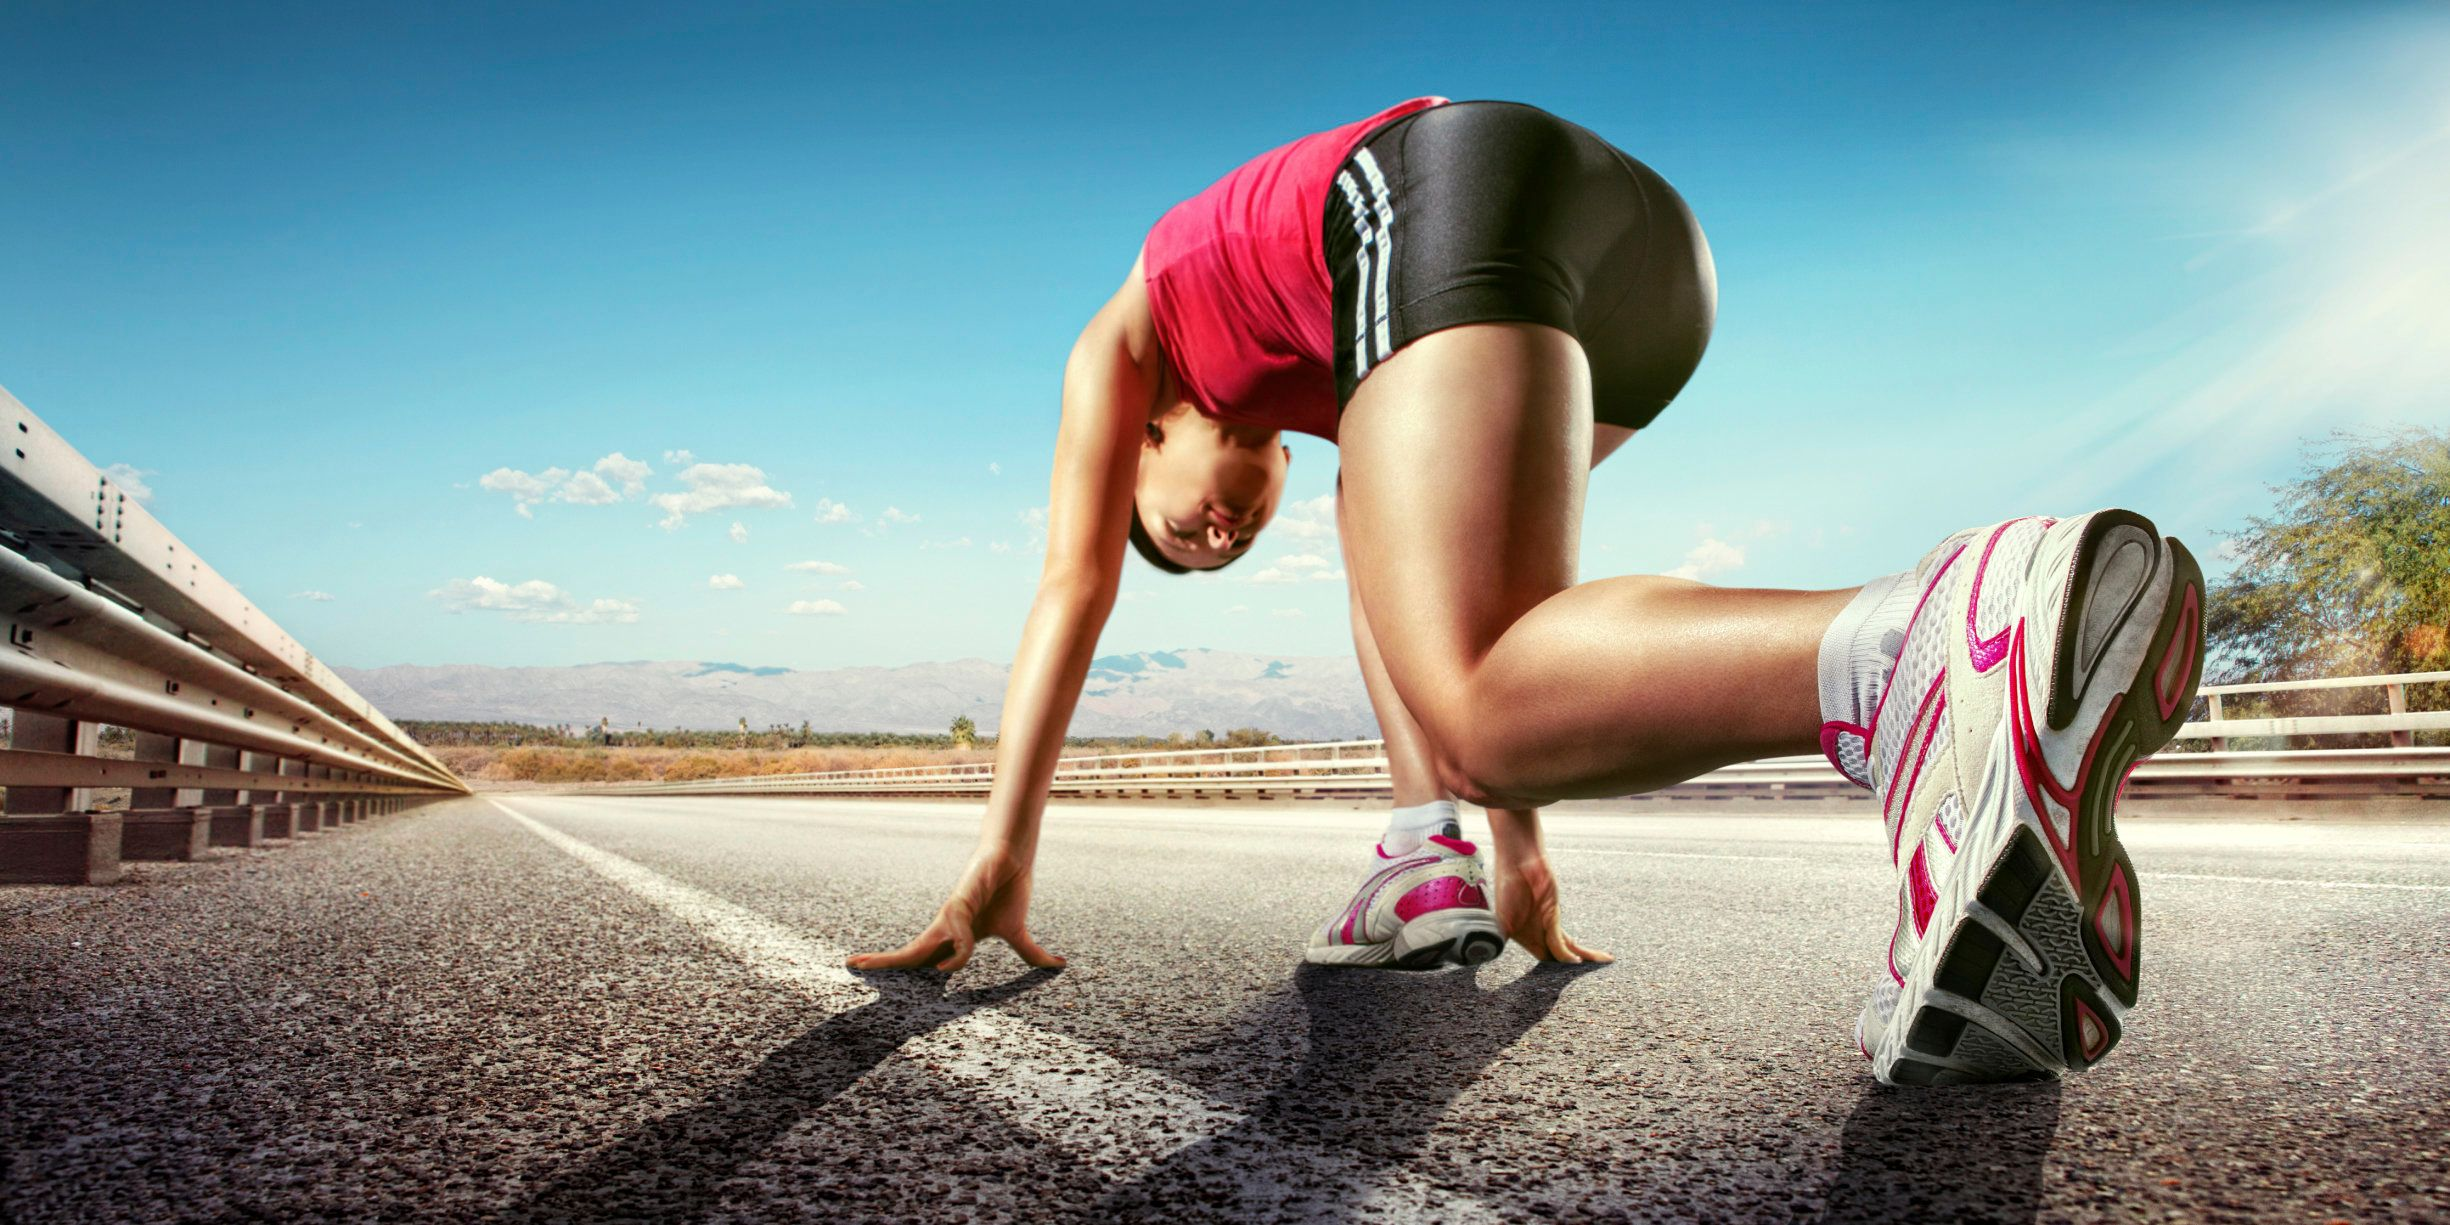 low angle view of female runner running down road wearing trainers